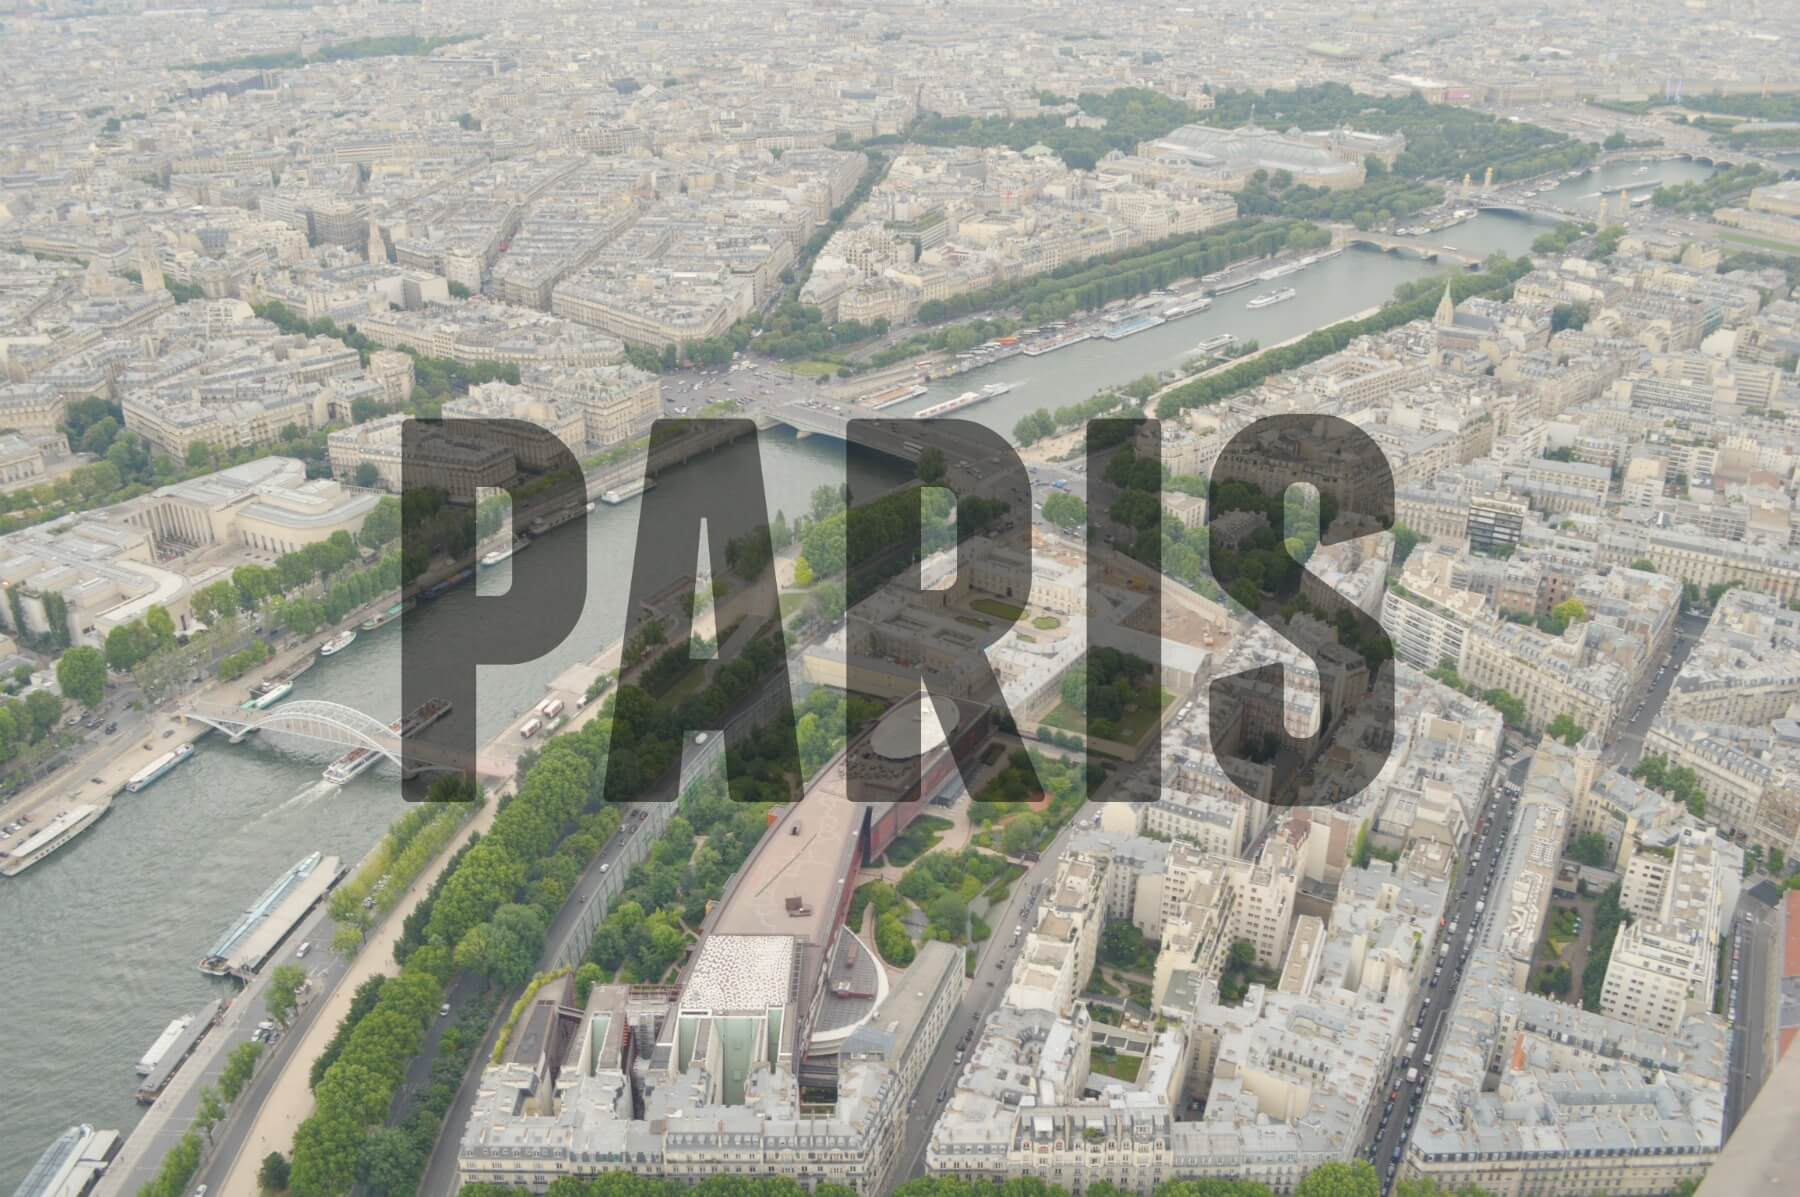 'PARIS' (View from Eiffel Tower)